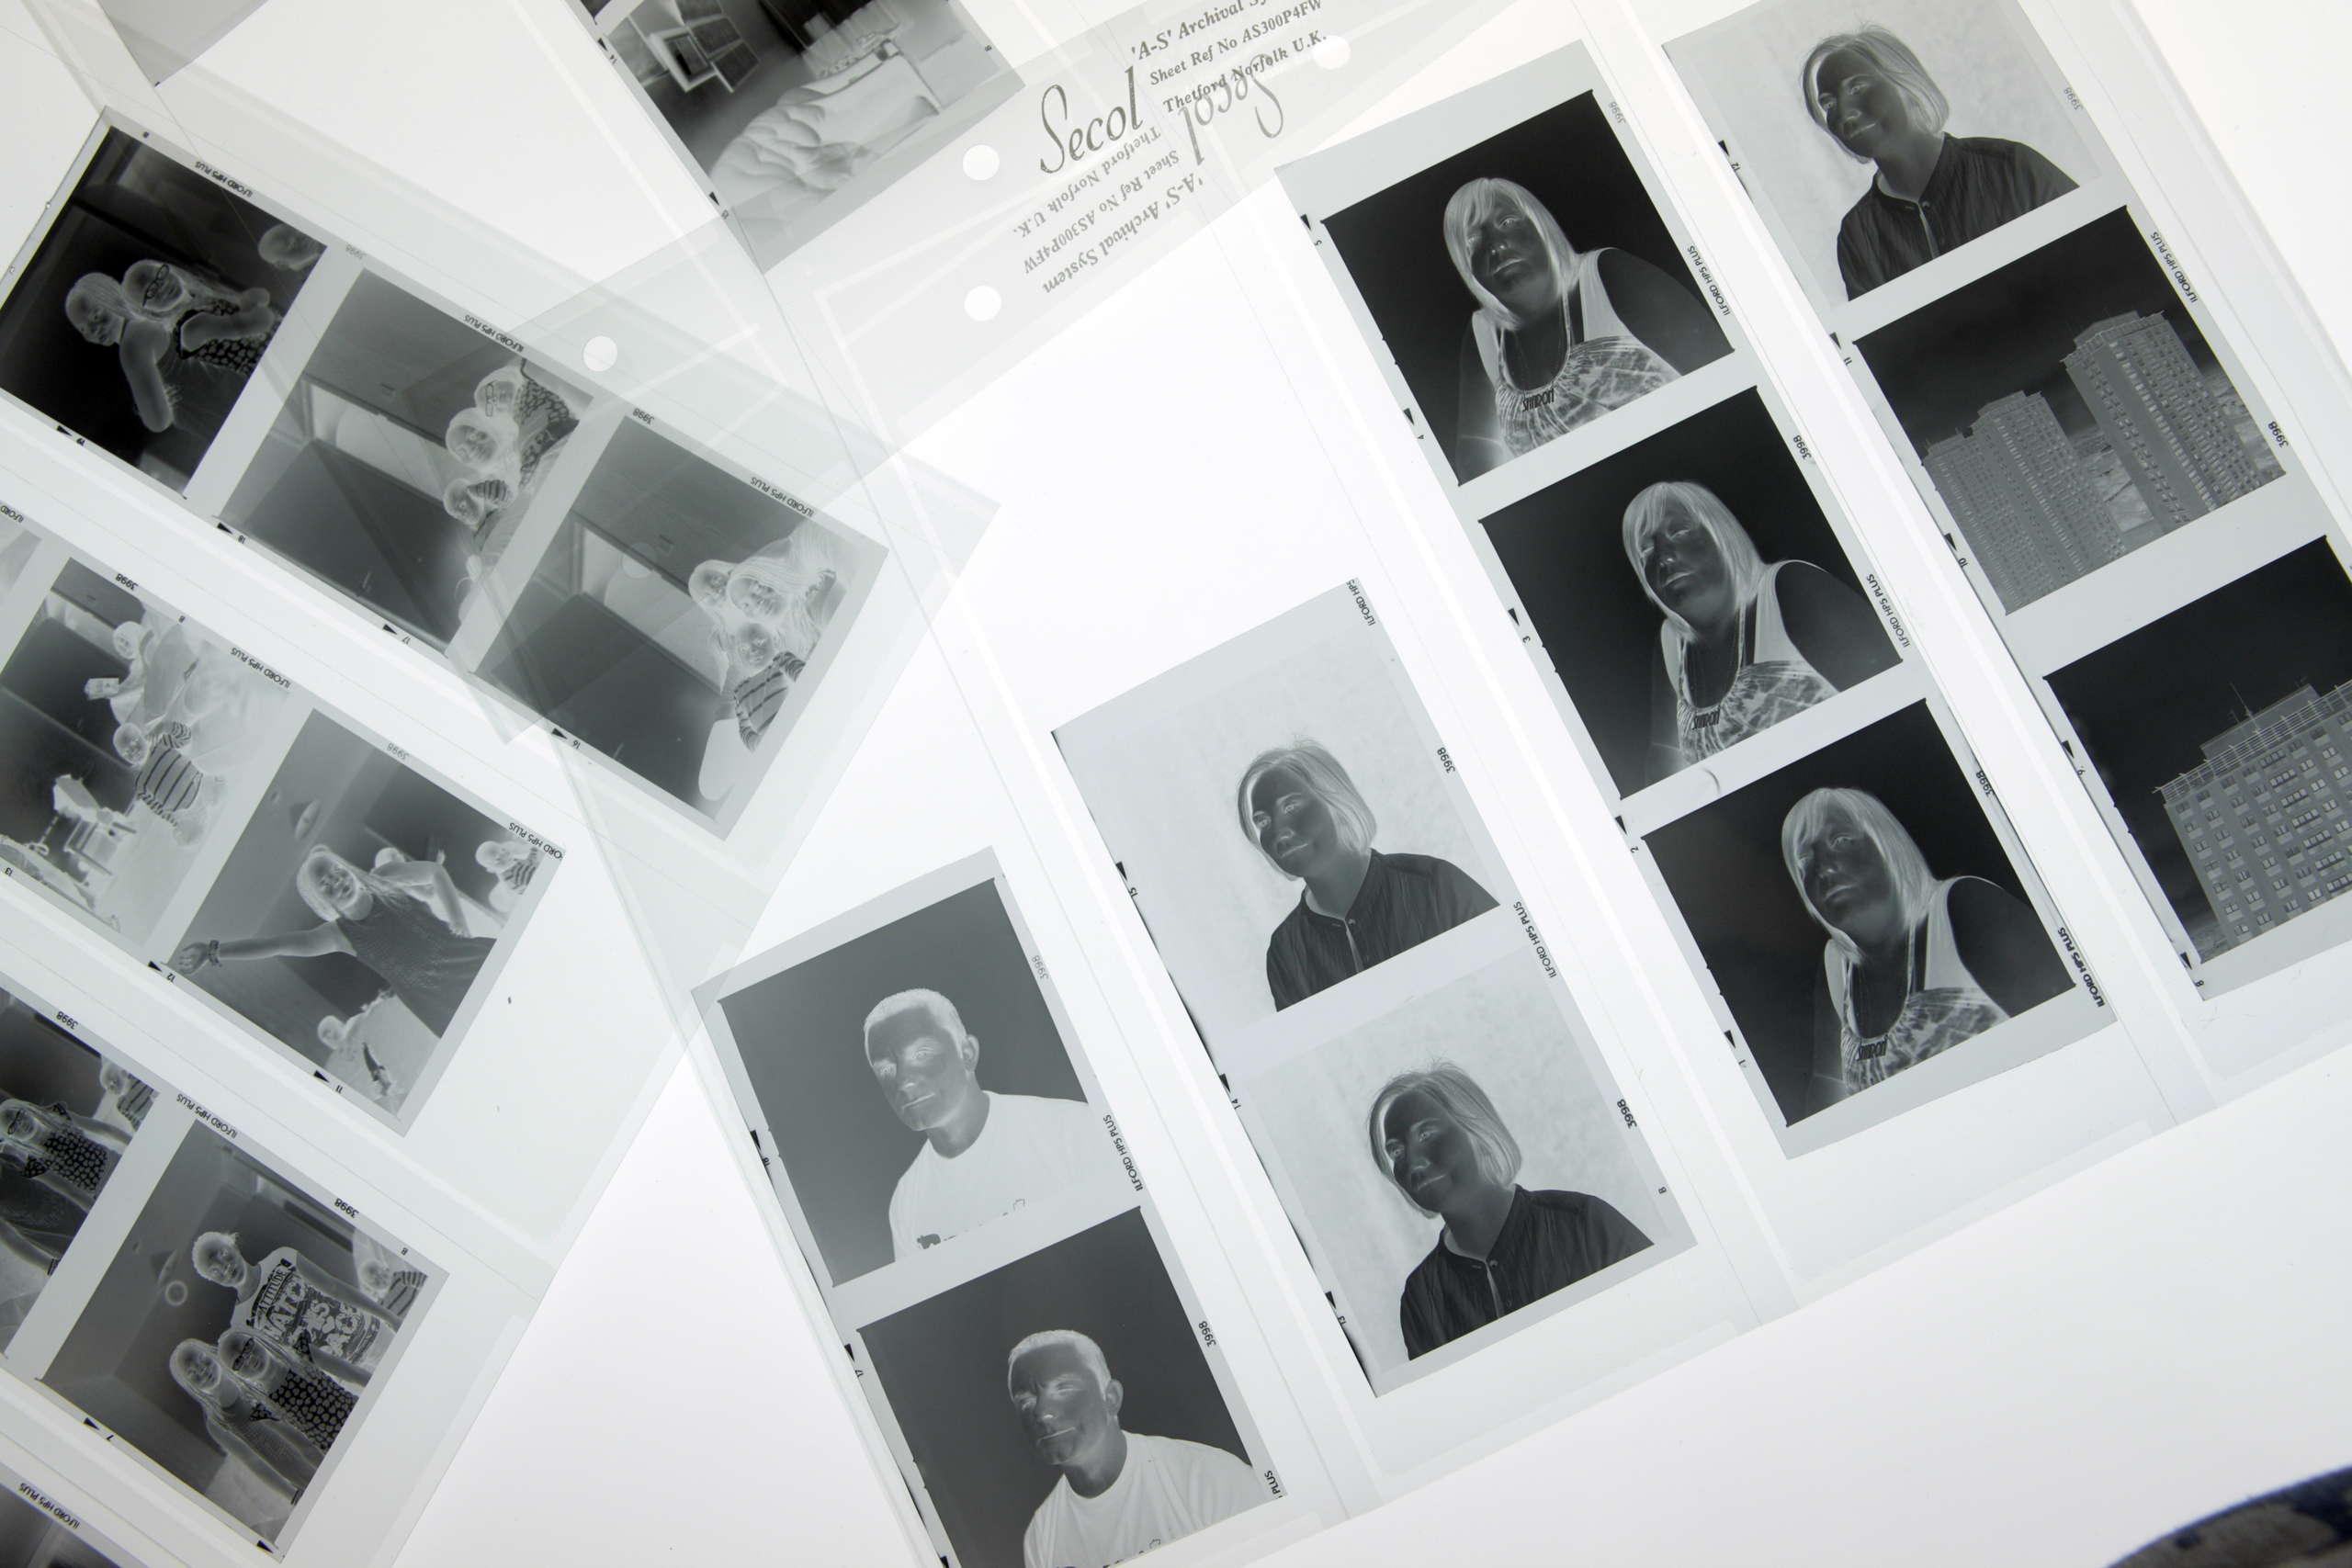 Image of Street Level Annual Membership by Street Level Photoworks